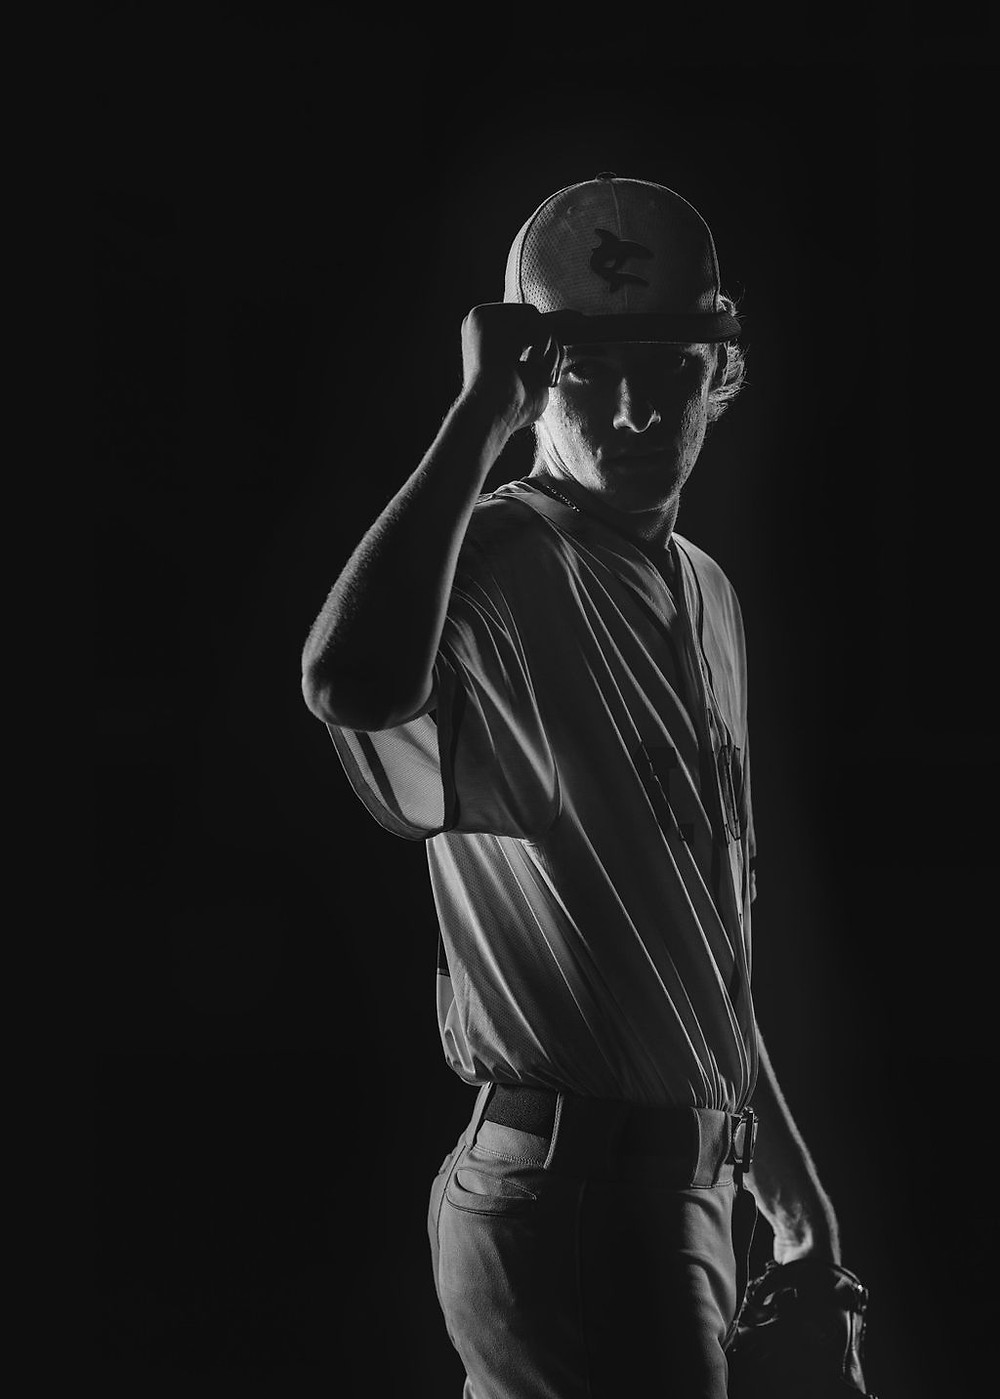 Black and White Baseball Photography